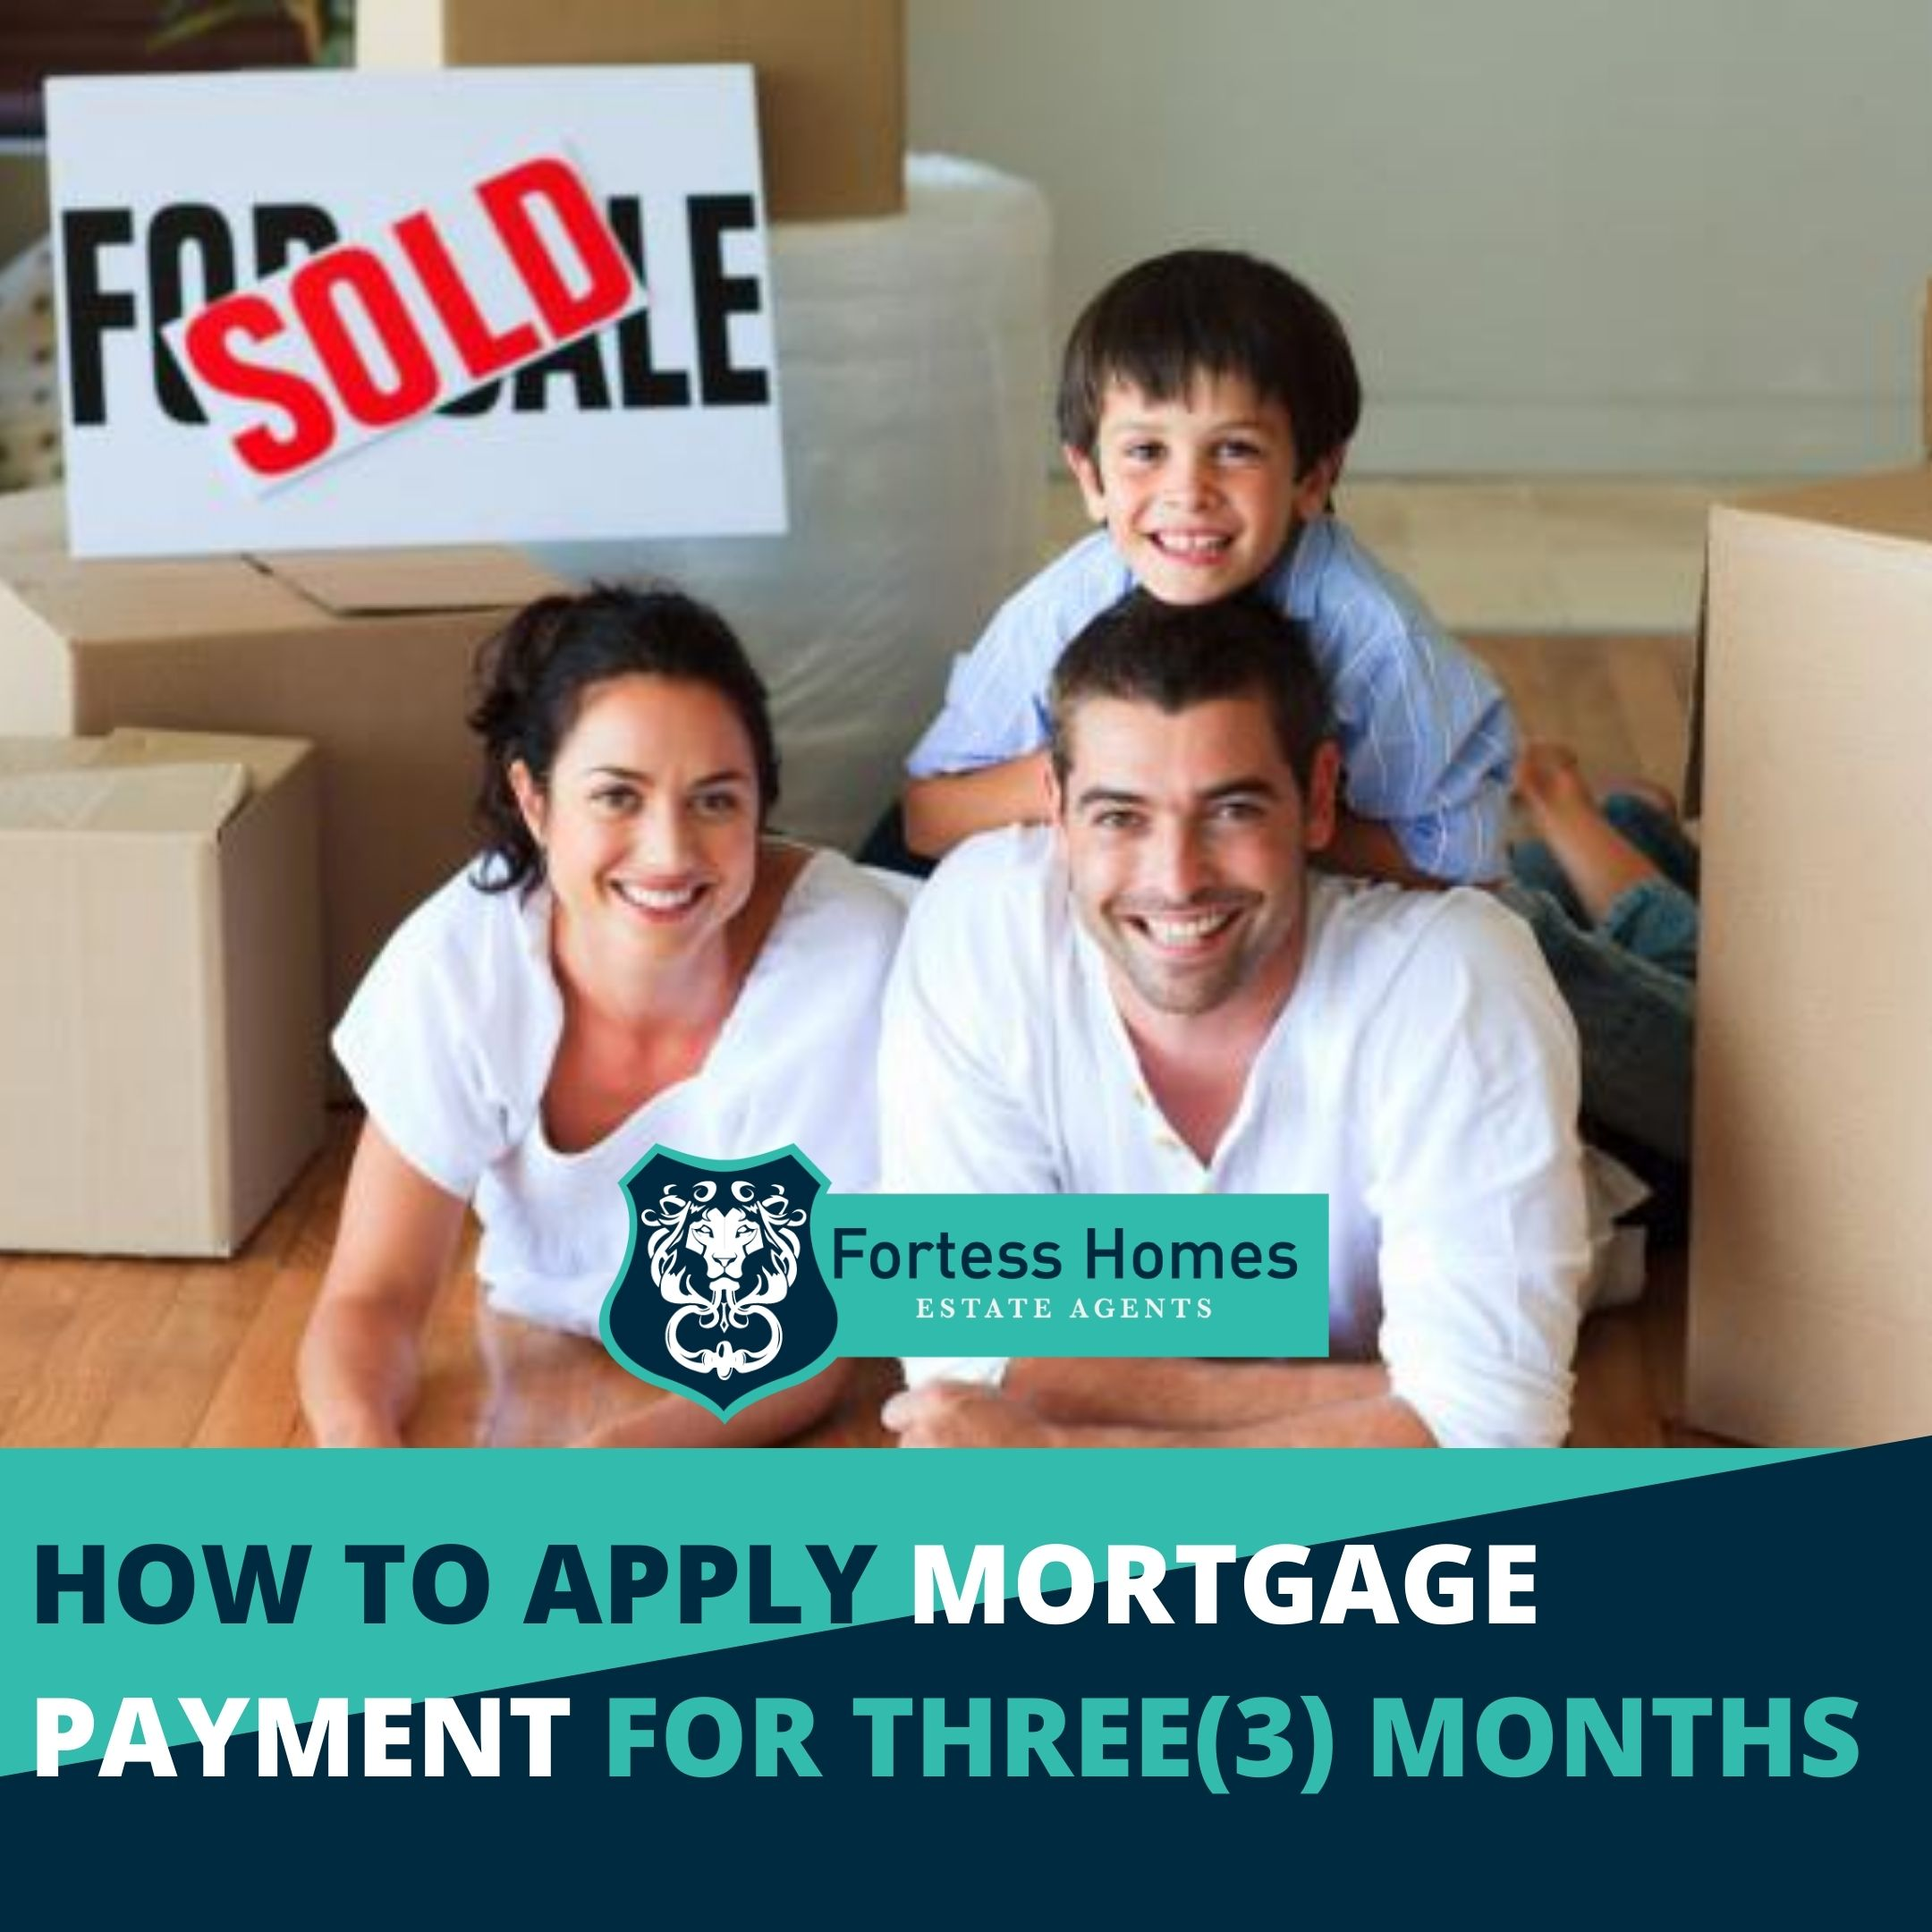 HOW TO APPLY MORTGAGE PAYMENT FOR THREE(3) MONTHS